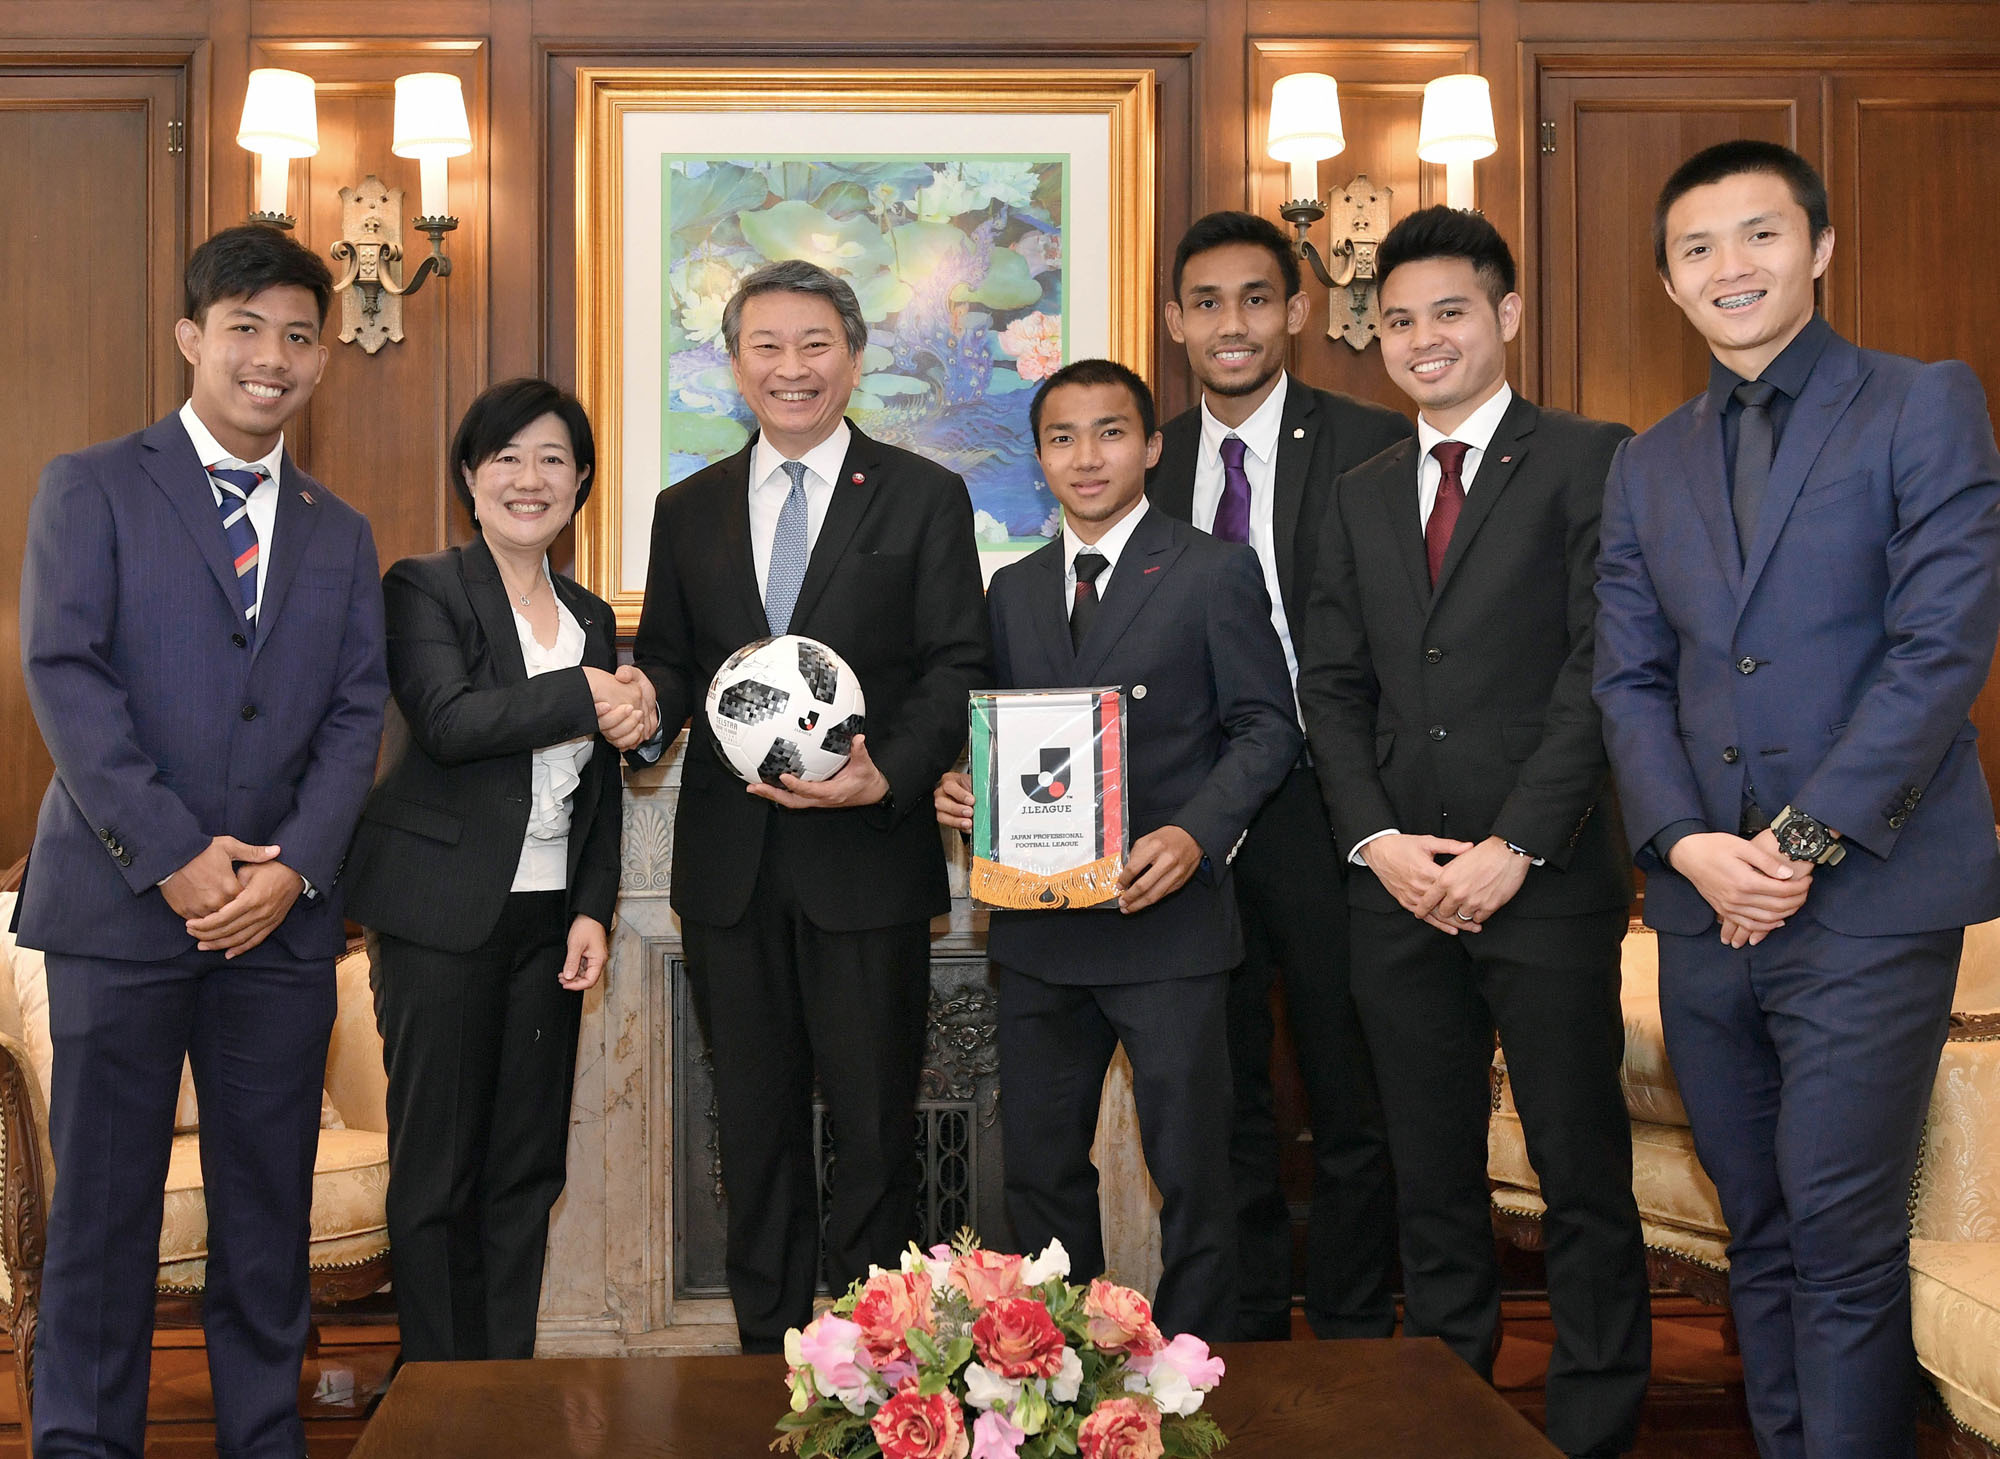 Thai soccer players in the J. League (from left) Jakkit Wachpirom (FC Tokyo), Chanathip Songkrasin (Hokkaido Consadole Sapporo ), Teerasil Dangda (Sanfrecce Hiroshima), Theerathon Bunmathan (Vissel Kobe), Chaowat Veerachart (Cerezo Osaka) and Yumiko Kinoshita (second from left), director of  the J. League's International Office, visit the Thai Embassy to present an autographed ball to Thai Ambasador Bansarn Bunnag  at the Thai ambassador's residence in Tokyo on Feb. 15. |  YOSHIAKI MIURA